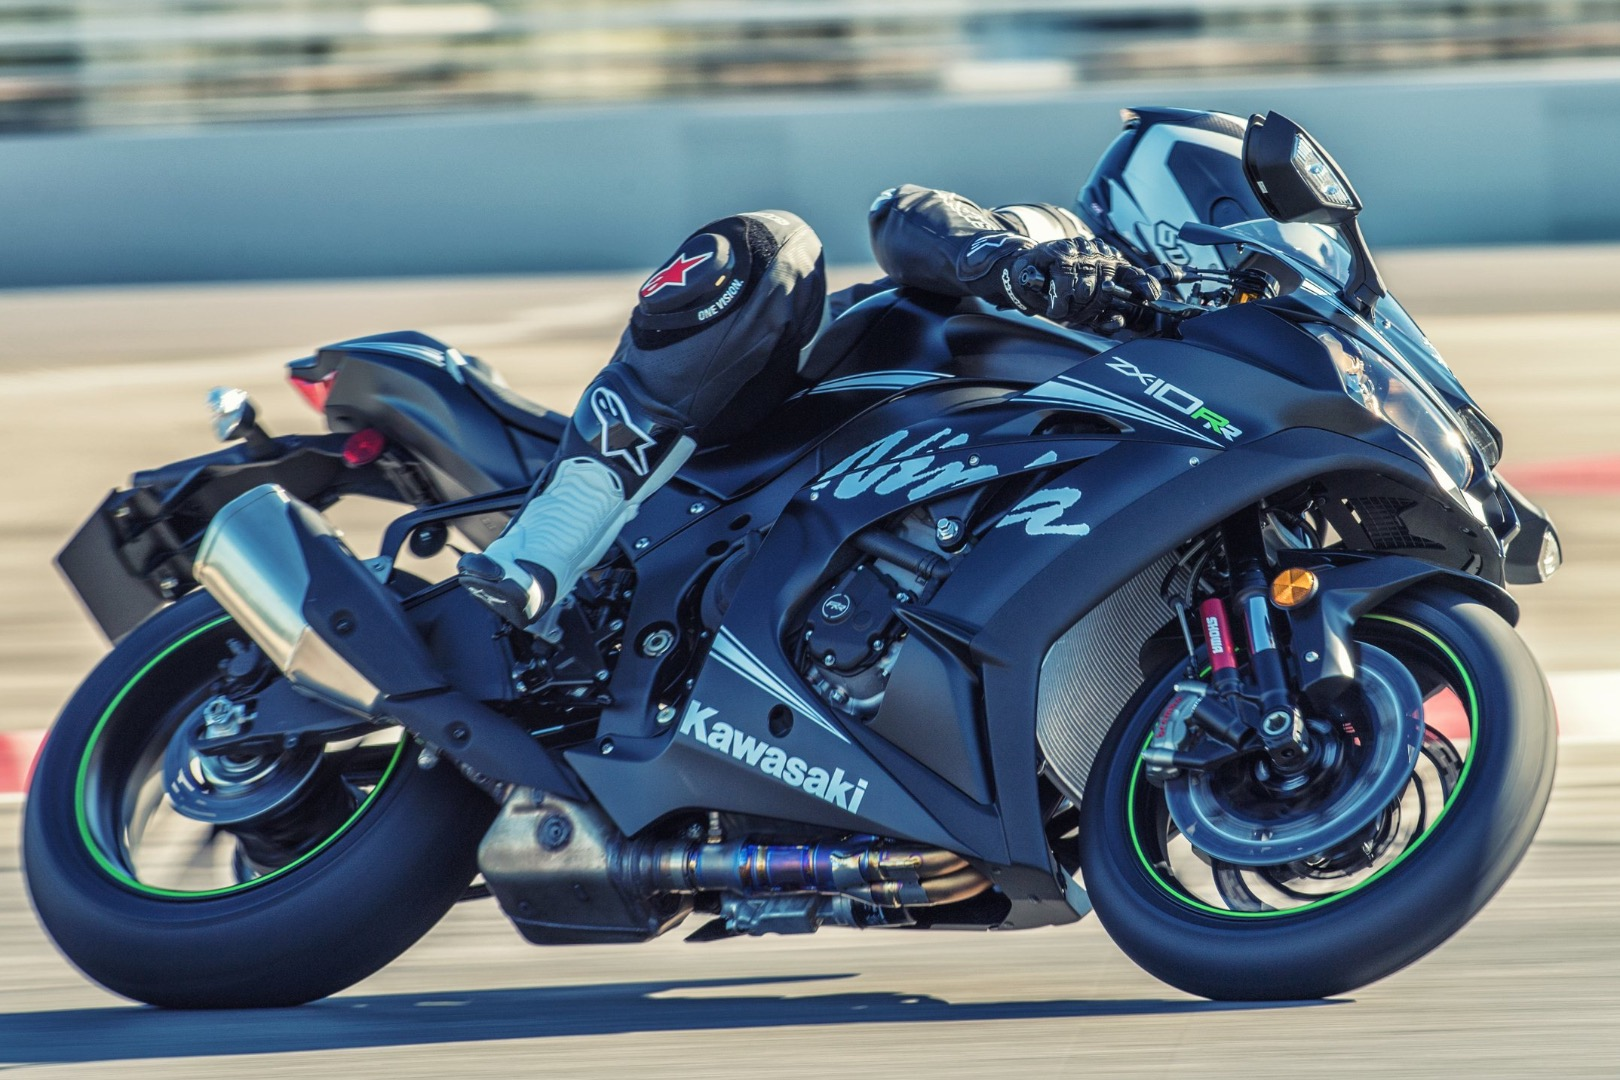 2017 Kawasaki Ninja ZX-10RR First Look